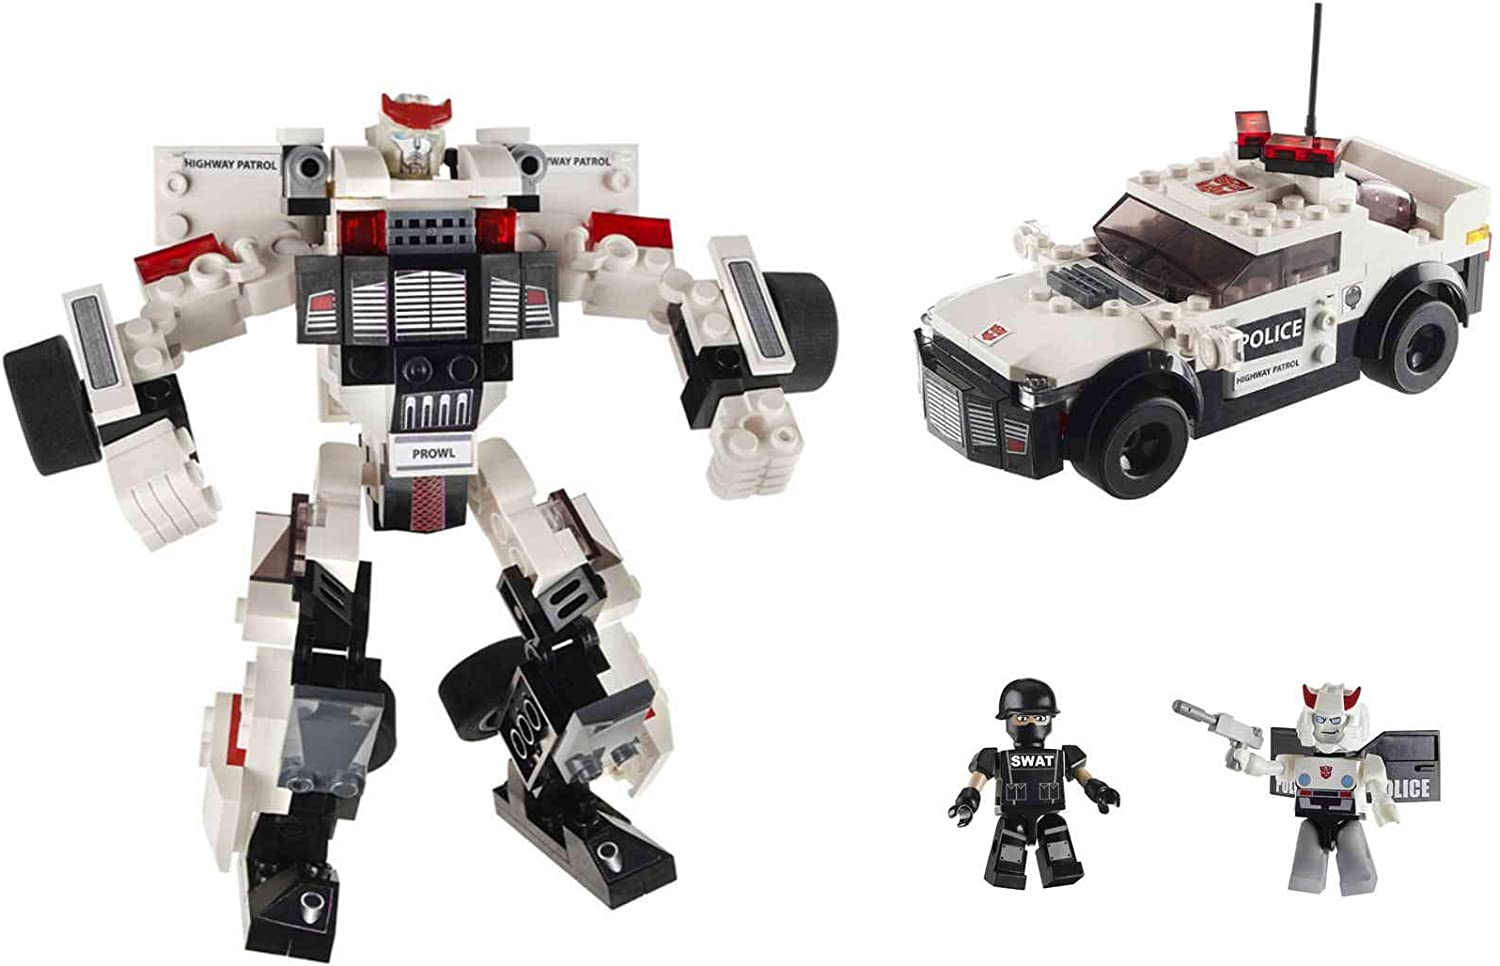 PROWL 149 pieces includes 2 Kreons Transformers Kre-o Building Toy Hasbro 2015